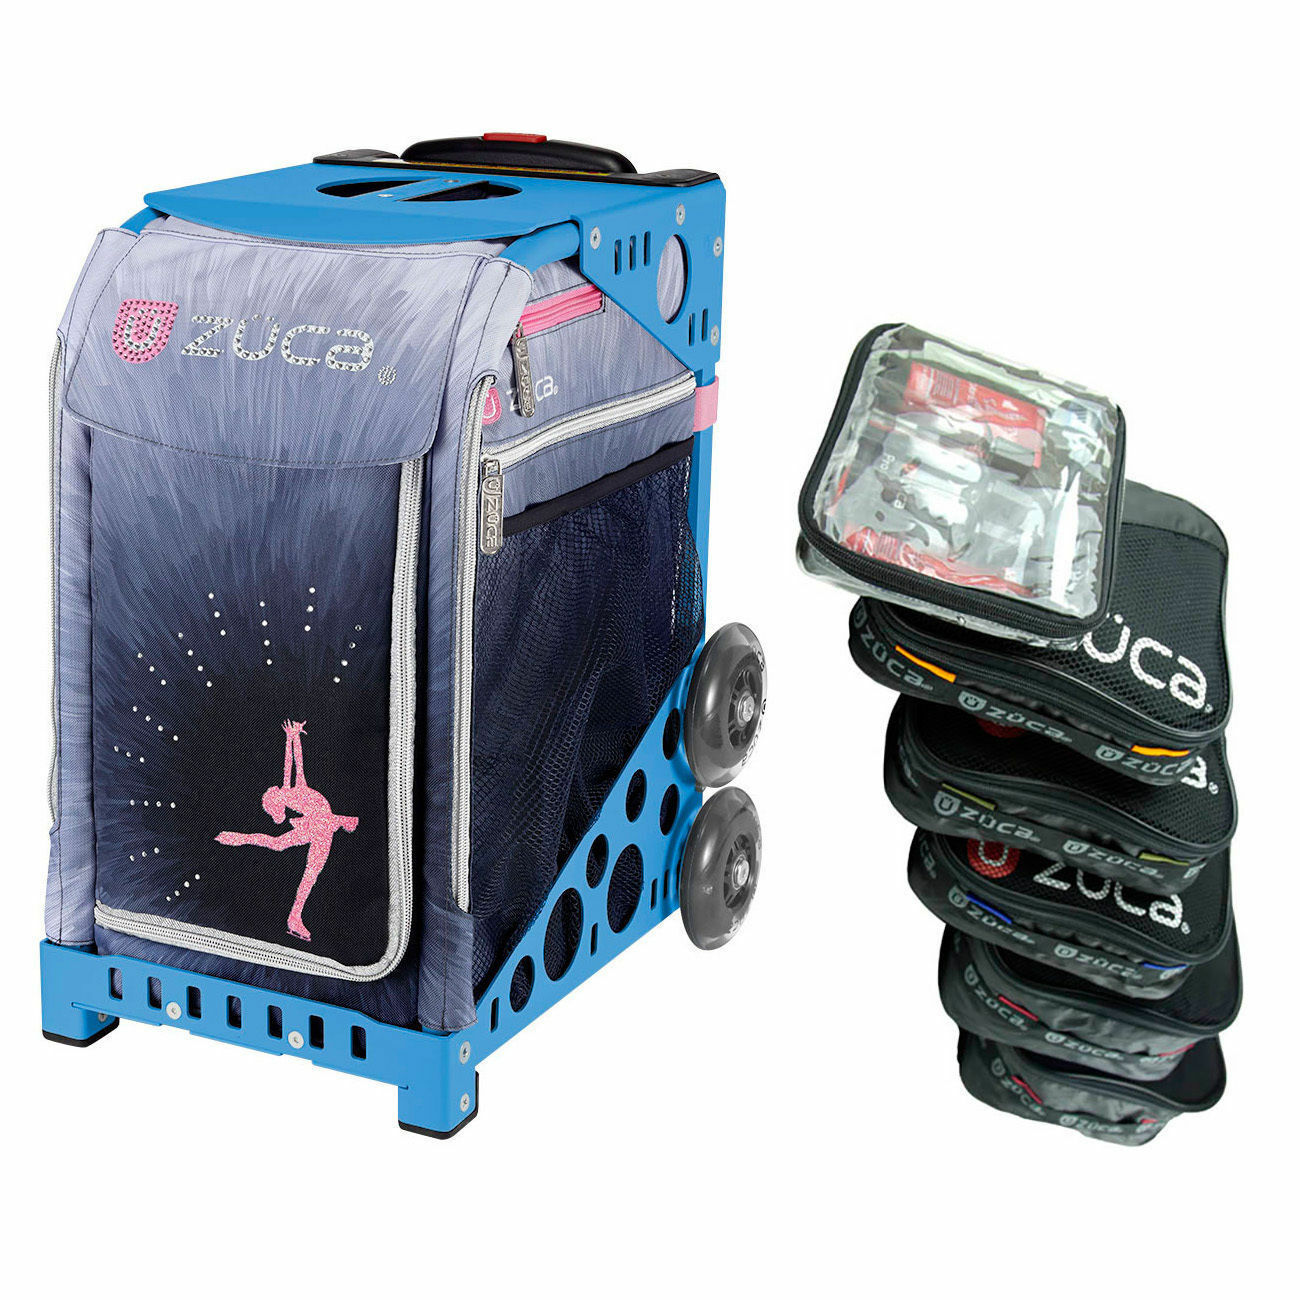 Zuca ICE DREAMZ LUX Sport Insert Bag with Blau Frame and Packing Pouch Set